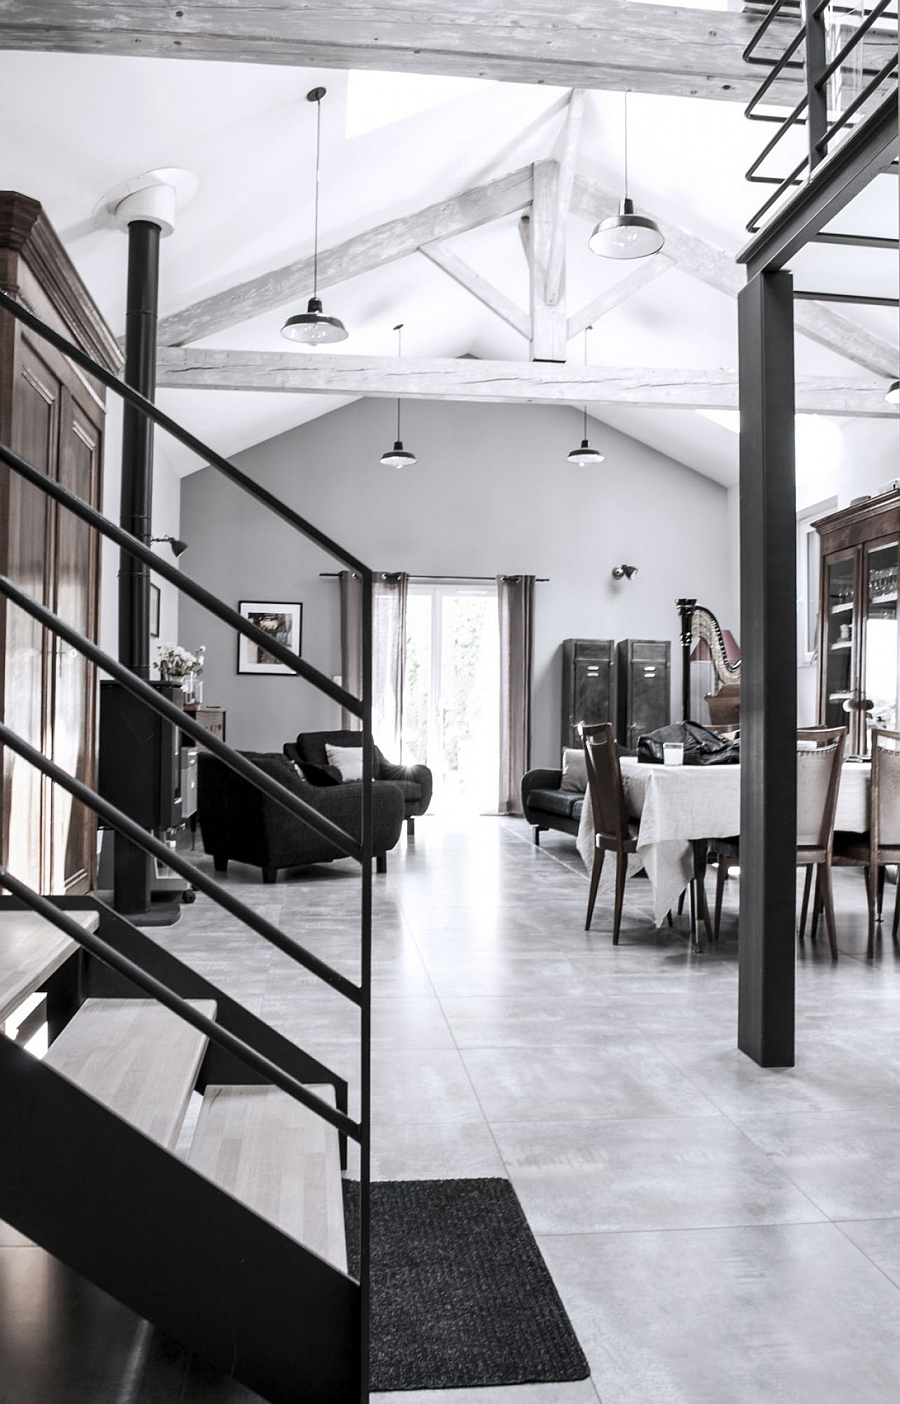 Interior of the French loft brings together old and the new